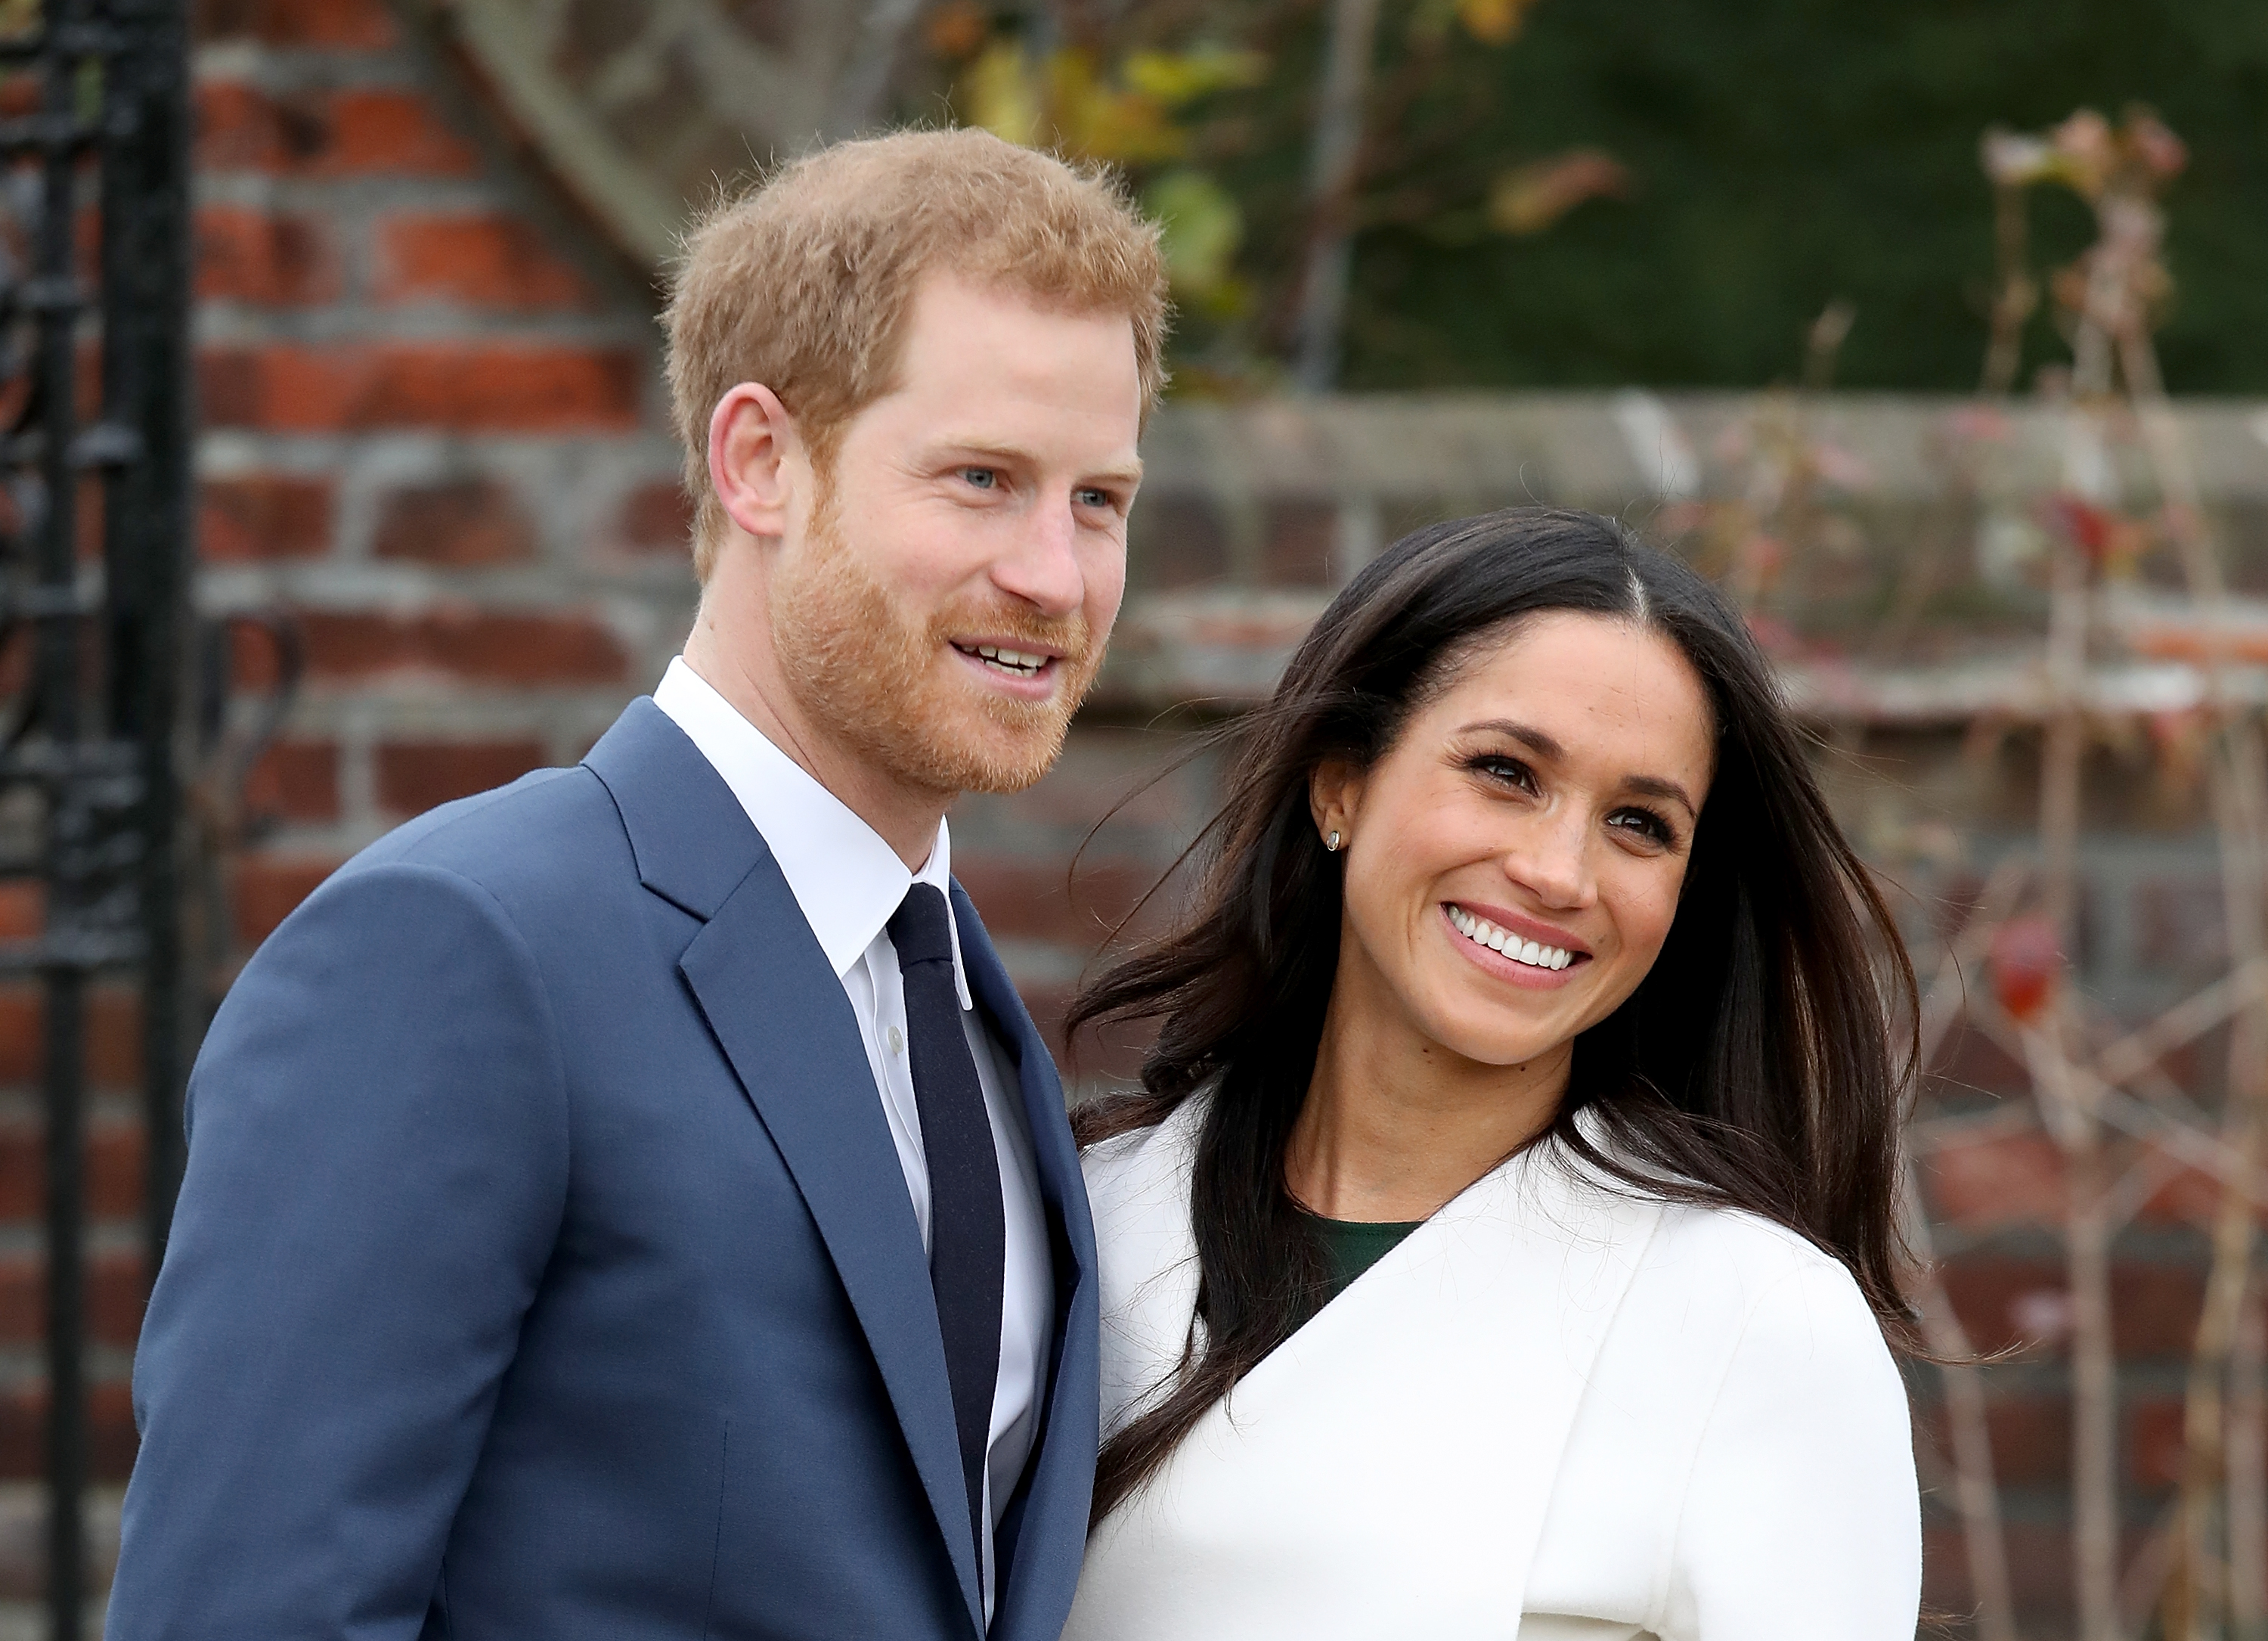 Prince Harry and Meghan Markle announce their engagement at Kensington Palace on Nov. 27, 2017 in London